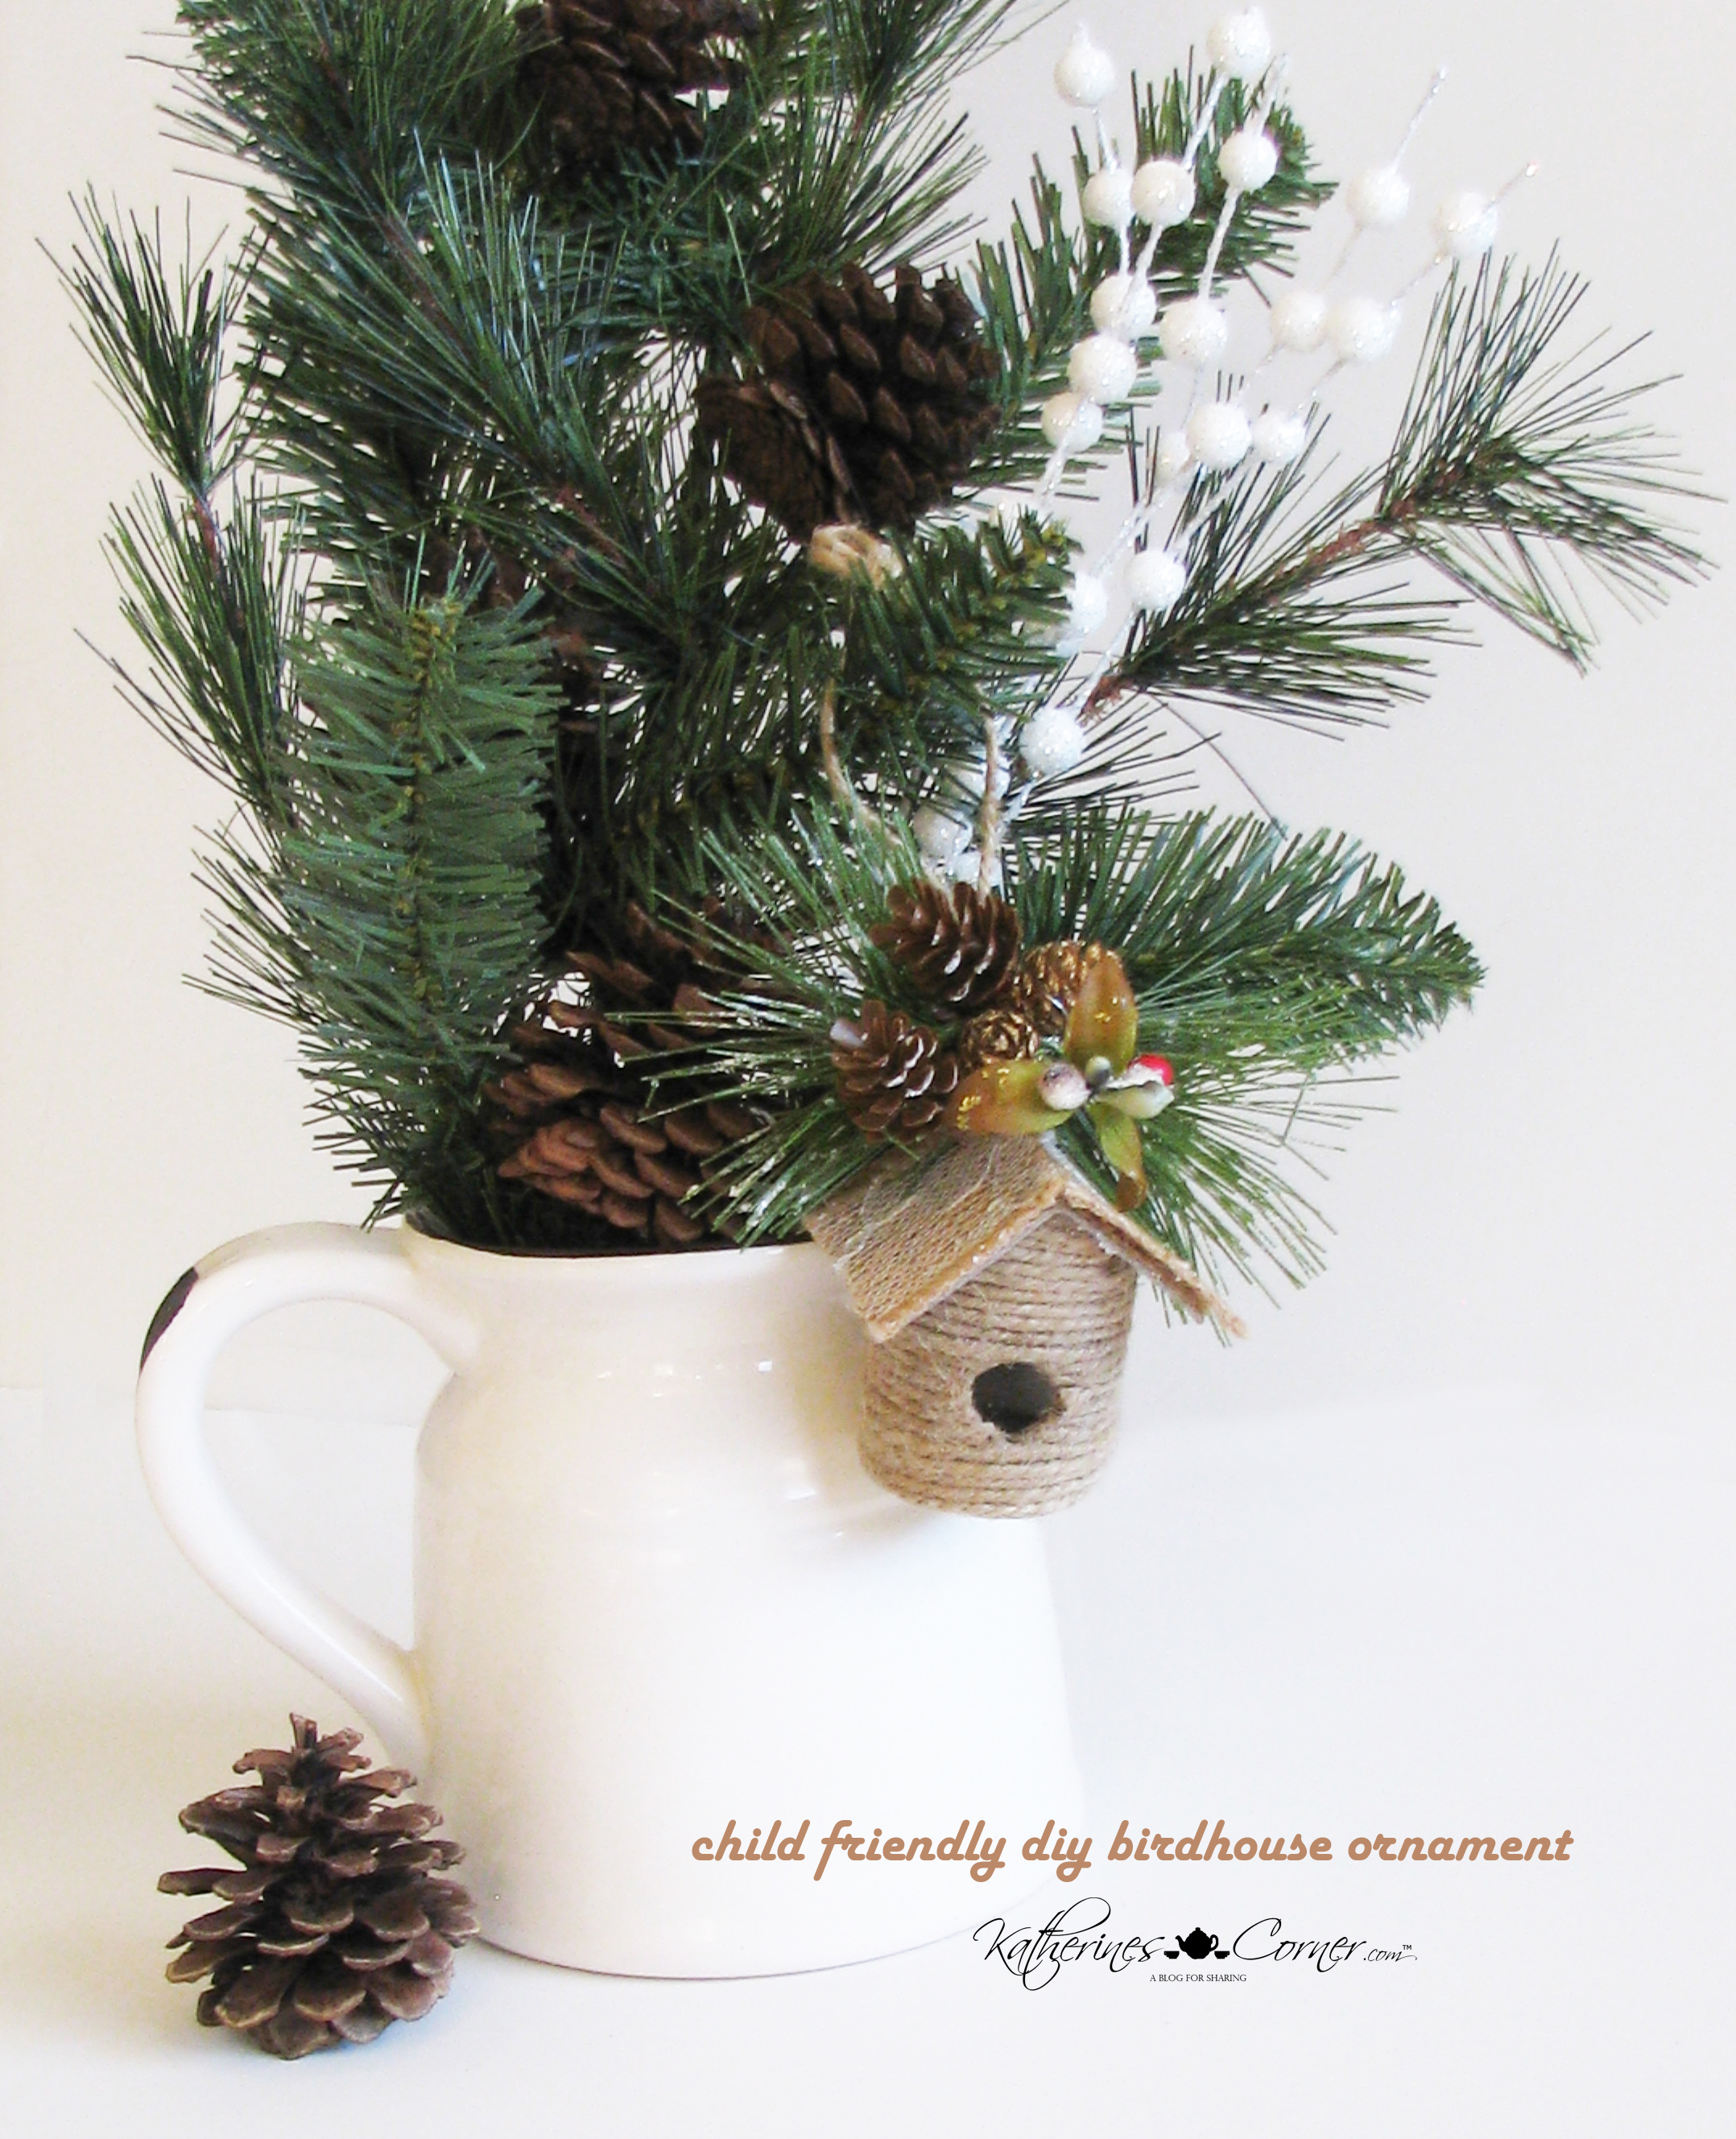 diy birdhouse ornament